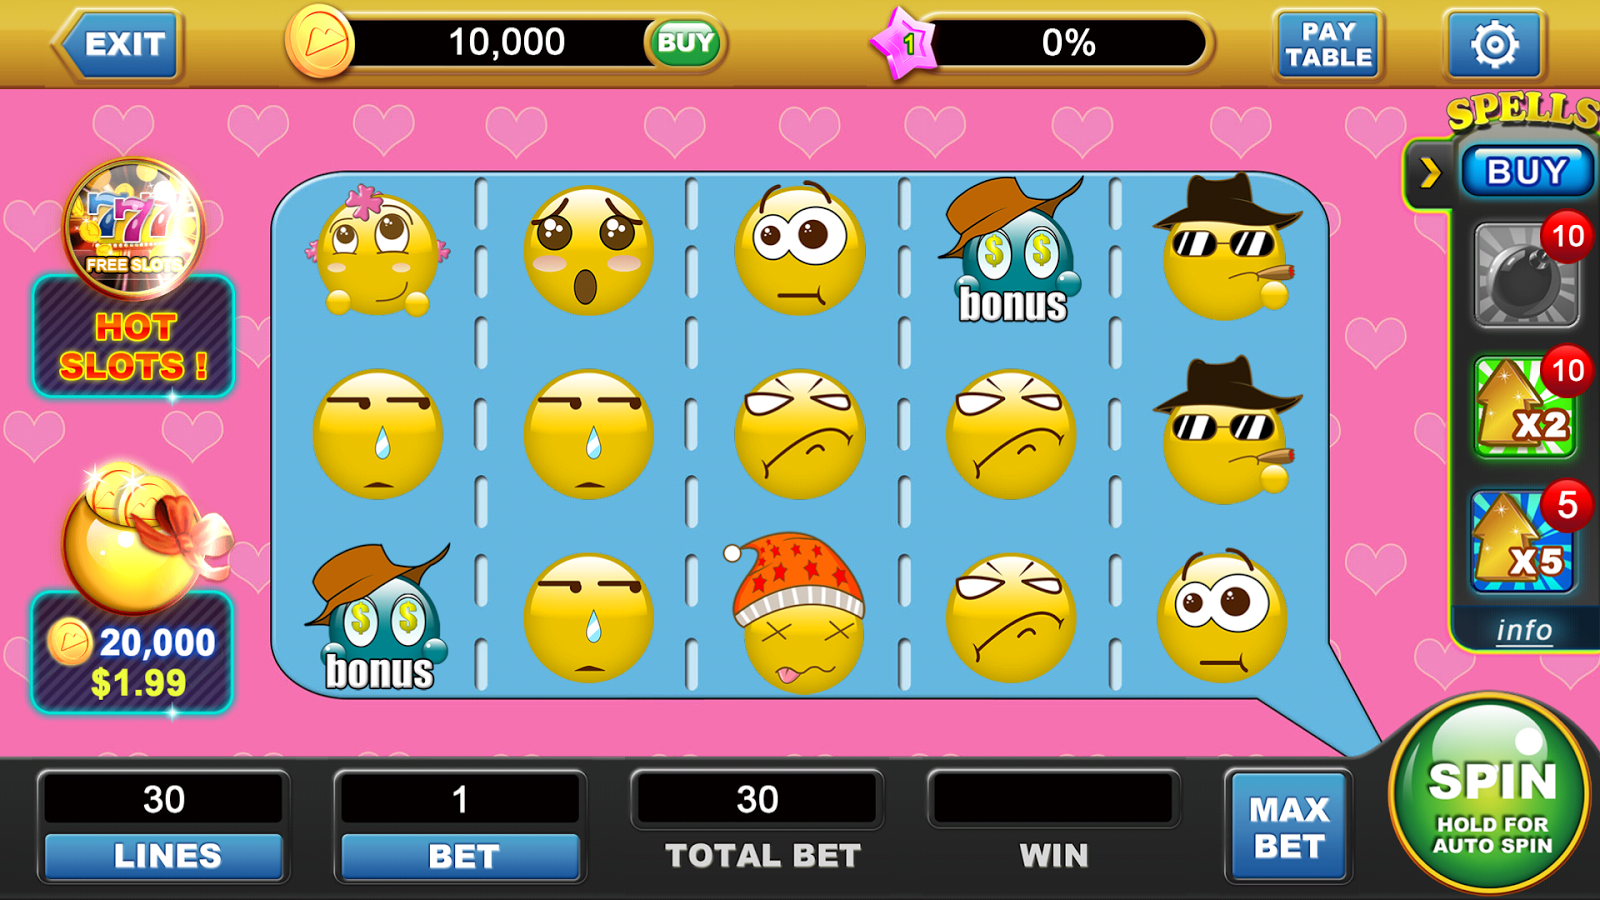 Emoji Slot Machine - Play the MrSlotty Casino Game for Free